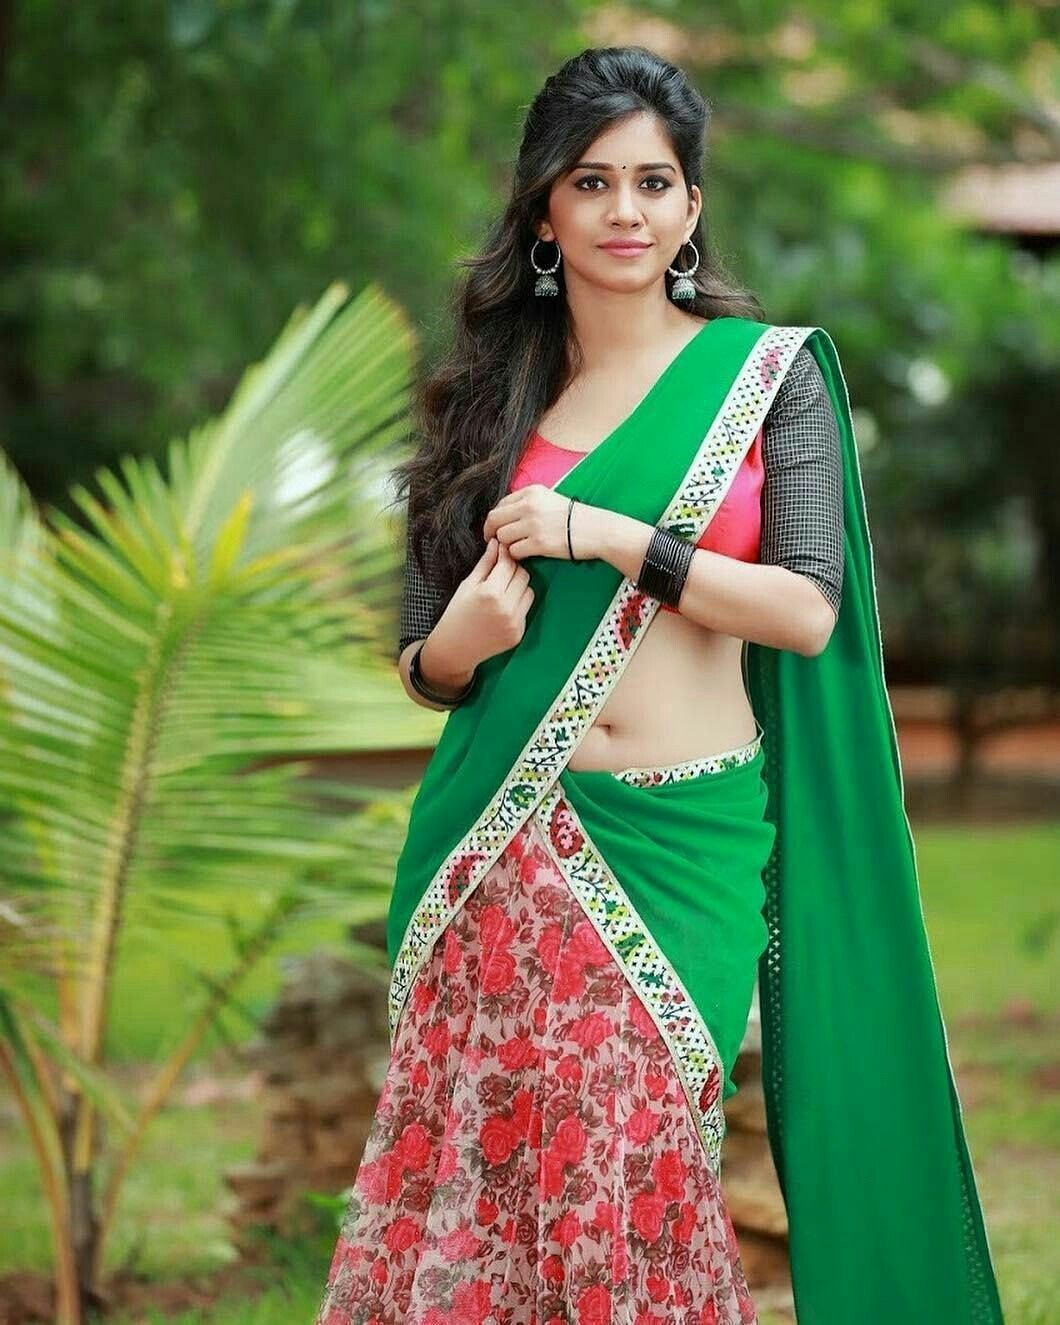 4d0afc383e Hot Indian Women in Saree: Exclusive and Ultimate Photo Collection ~ Facts  N' Frames-Movies | Music | Health | Tech | Travel | Books | Education ...